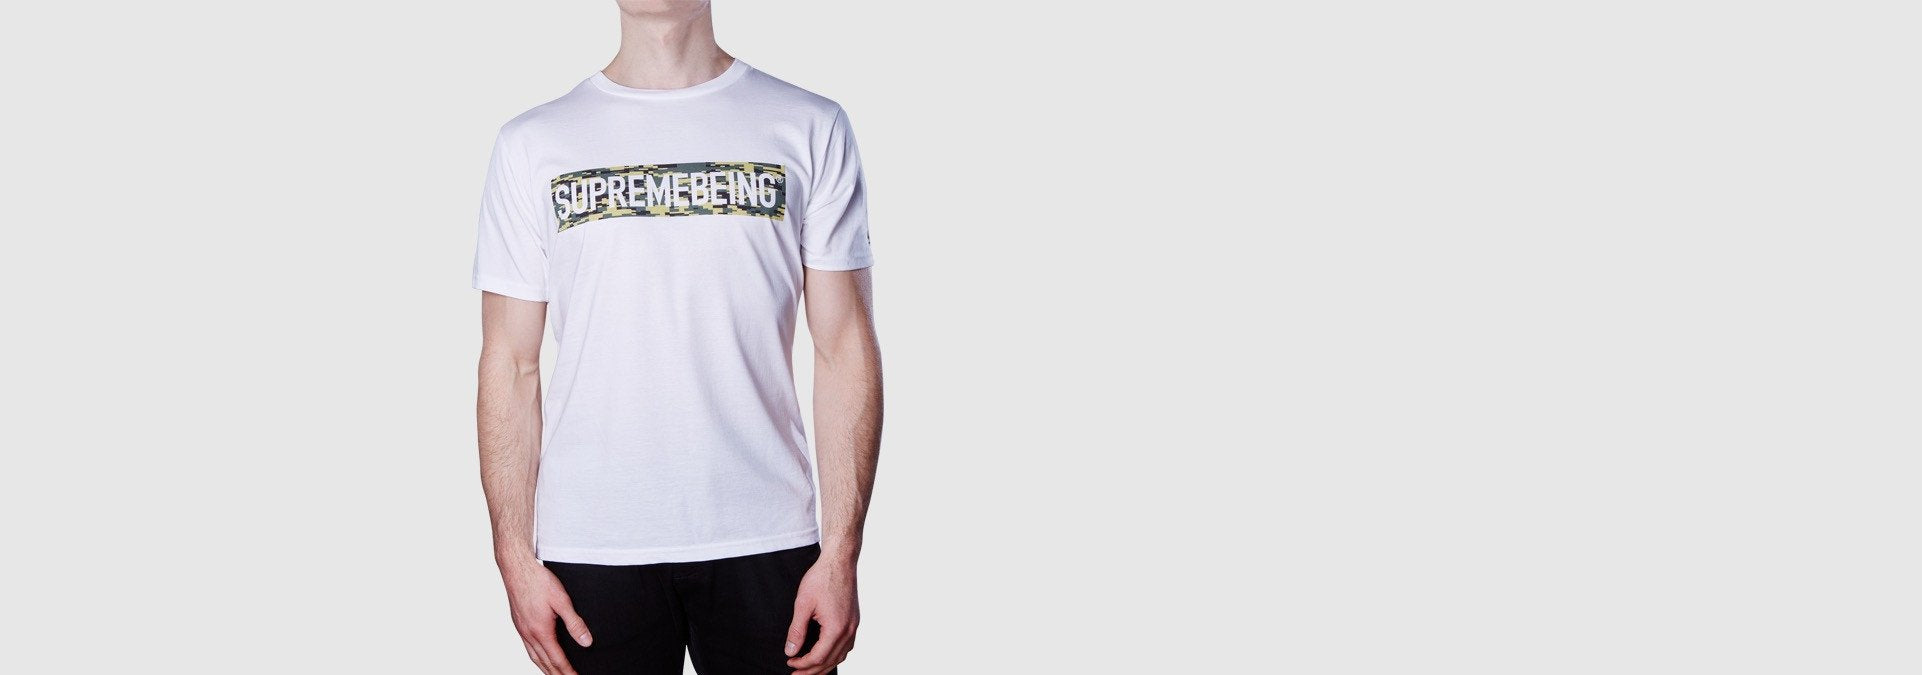 Supremebeing Camouflage Background Organic Cotton T-Shirt White